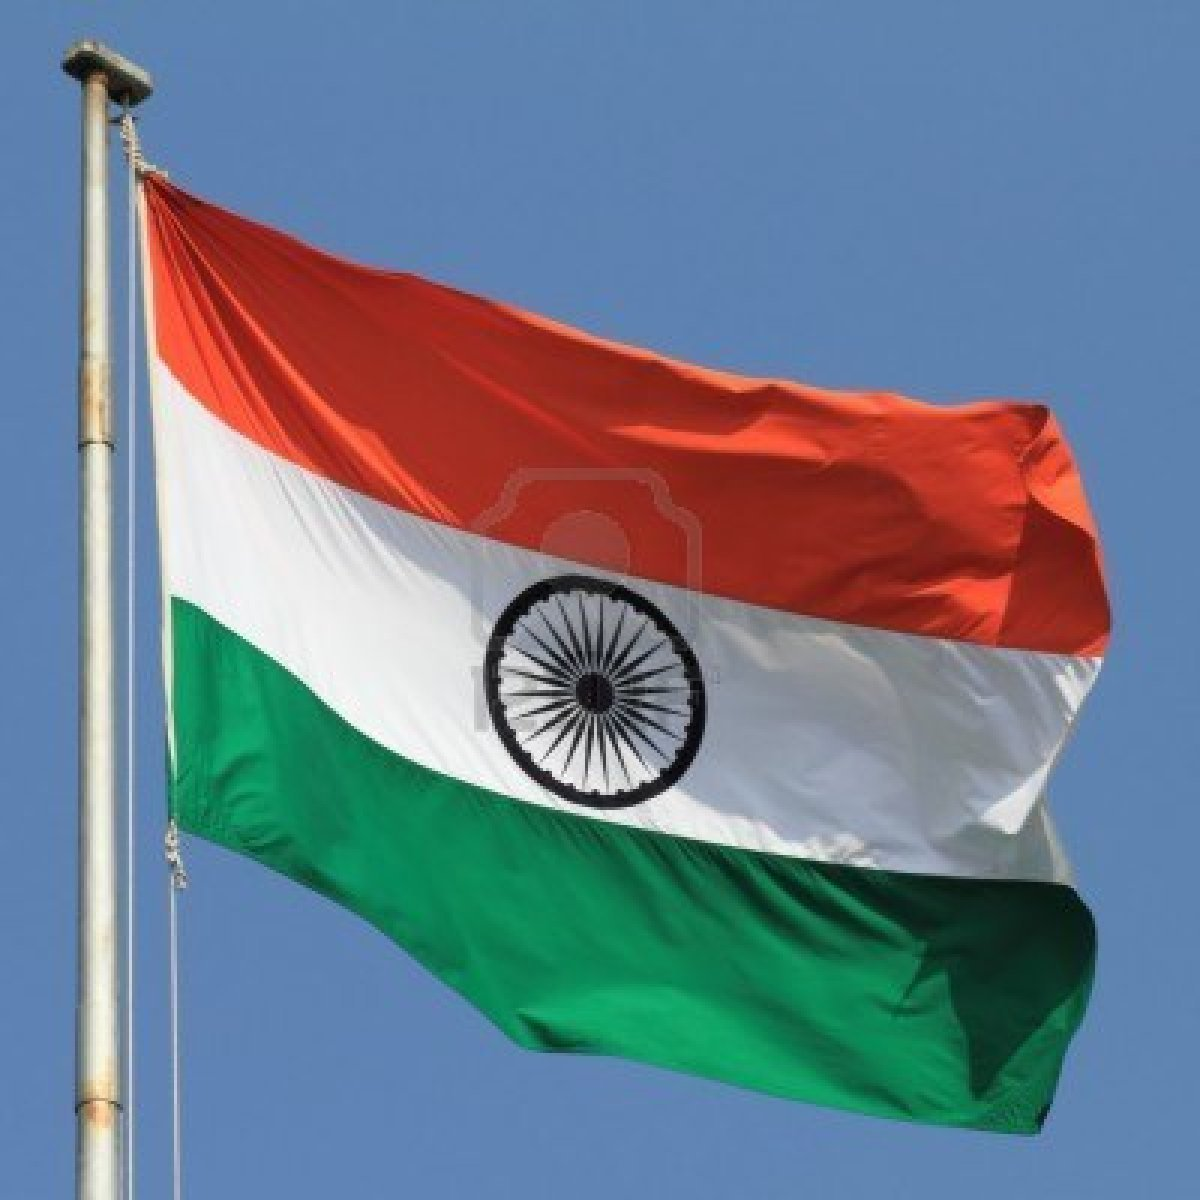 Indian Flag Wallpapers 2016 - Wallpaper Cave